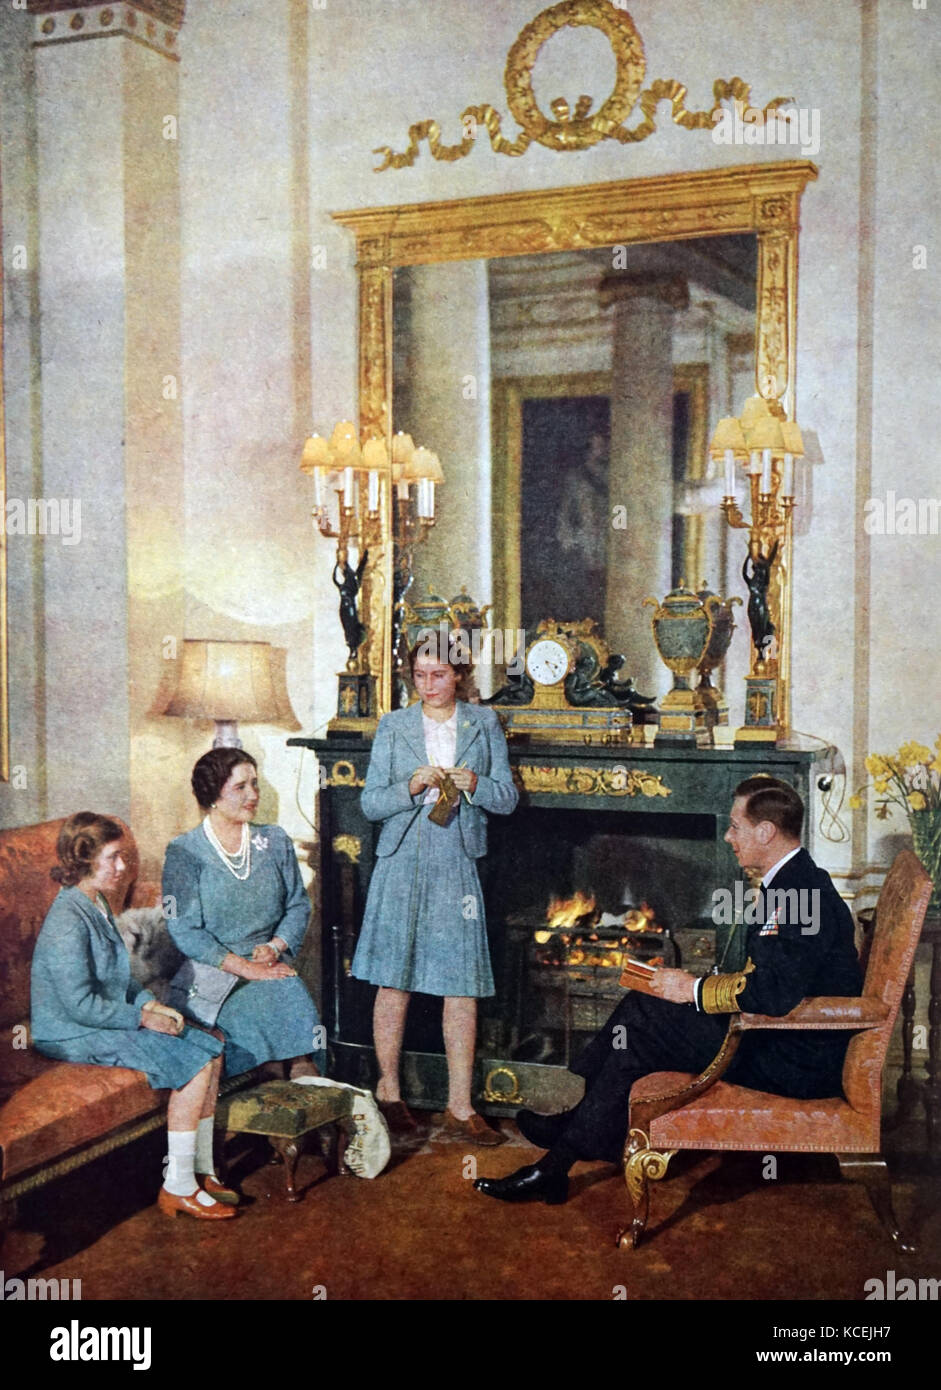 King George VI with Queen Elizabeth and their daughters Elizabeth (Later Queen Elizabeth II) and Princess Margaret, - Stock Image